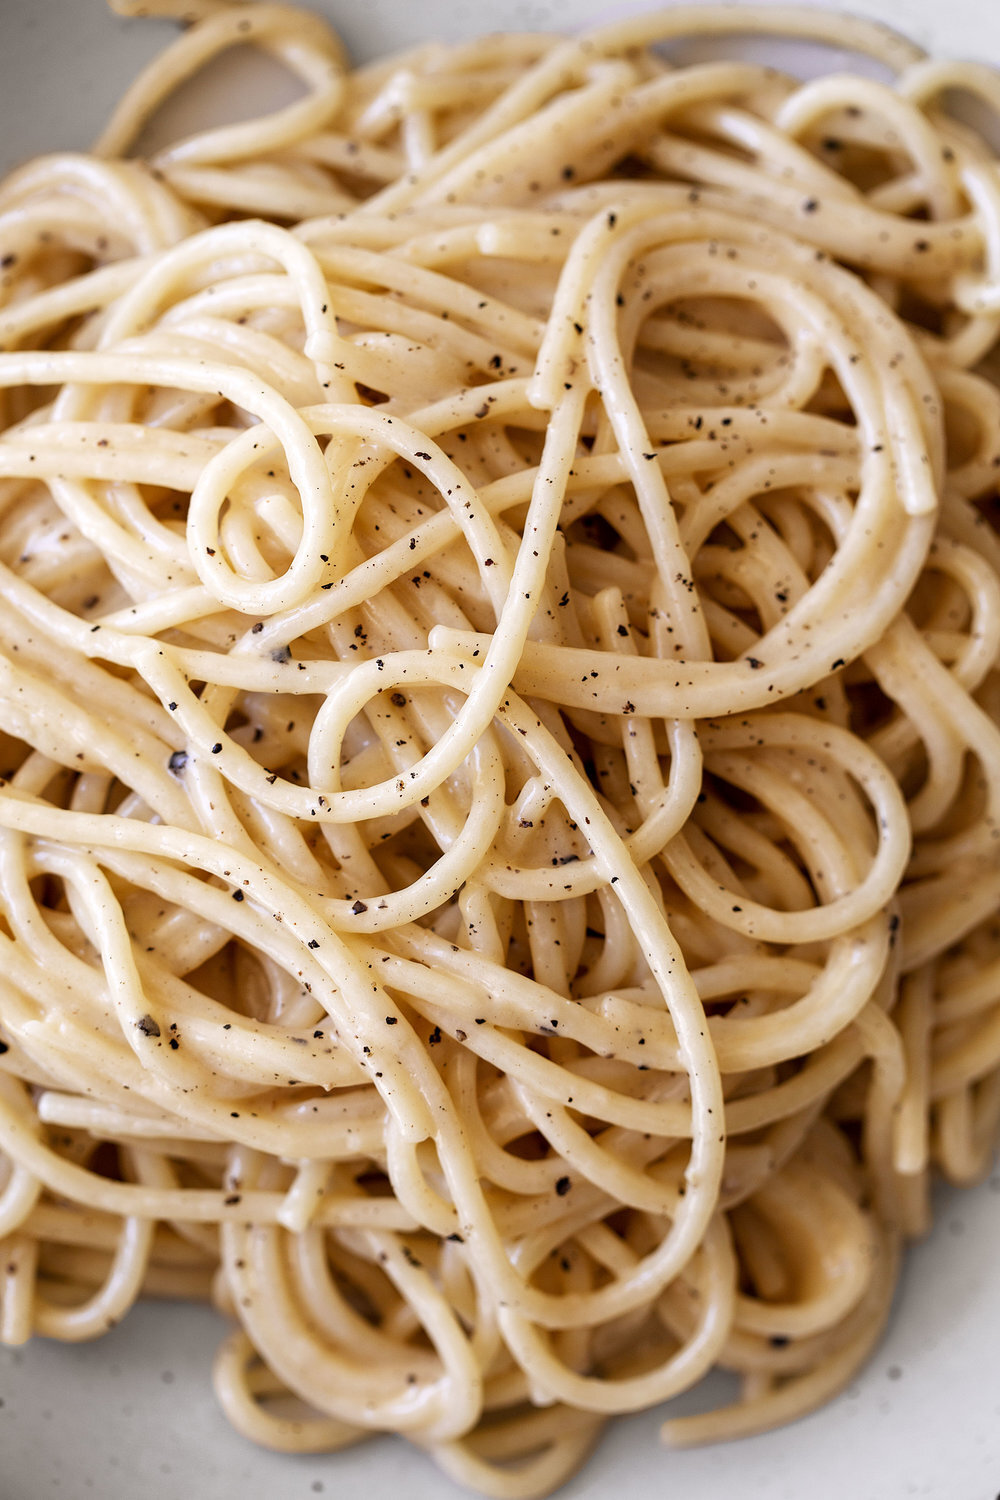 - Cacio e Pepe- This recipe is like adult mac and cheese! It's a deceptively simple recipe with just a few ingredients but will impress a date or parents alike.